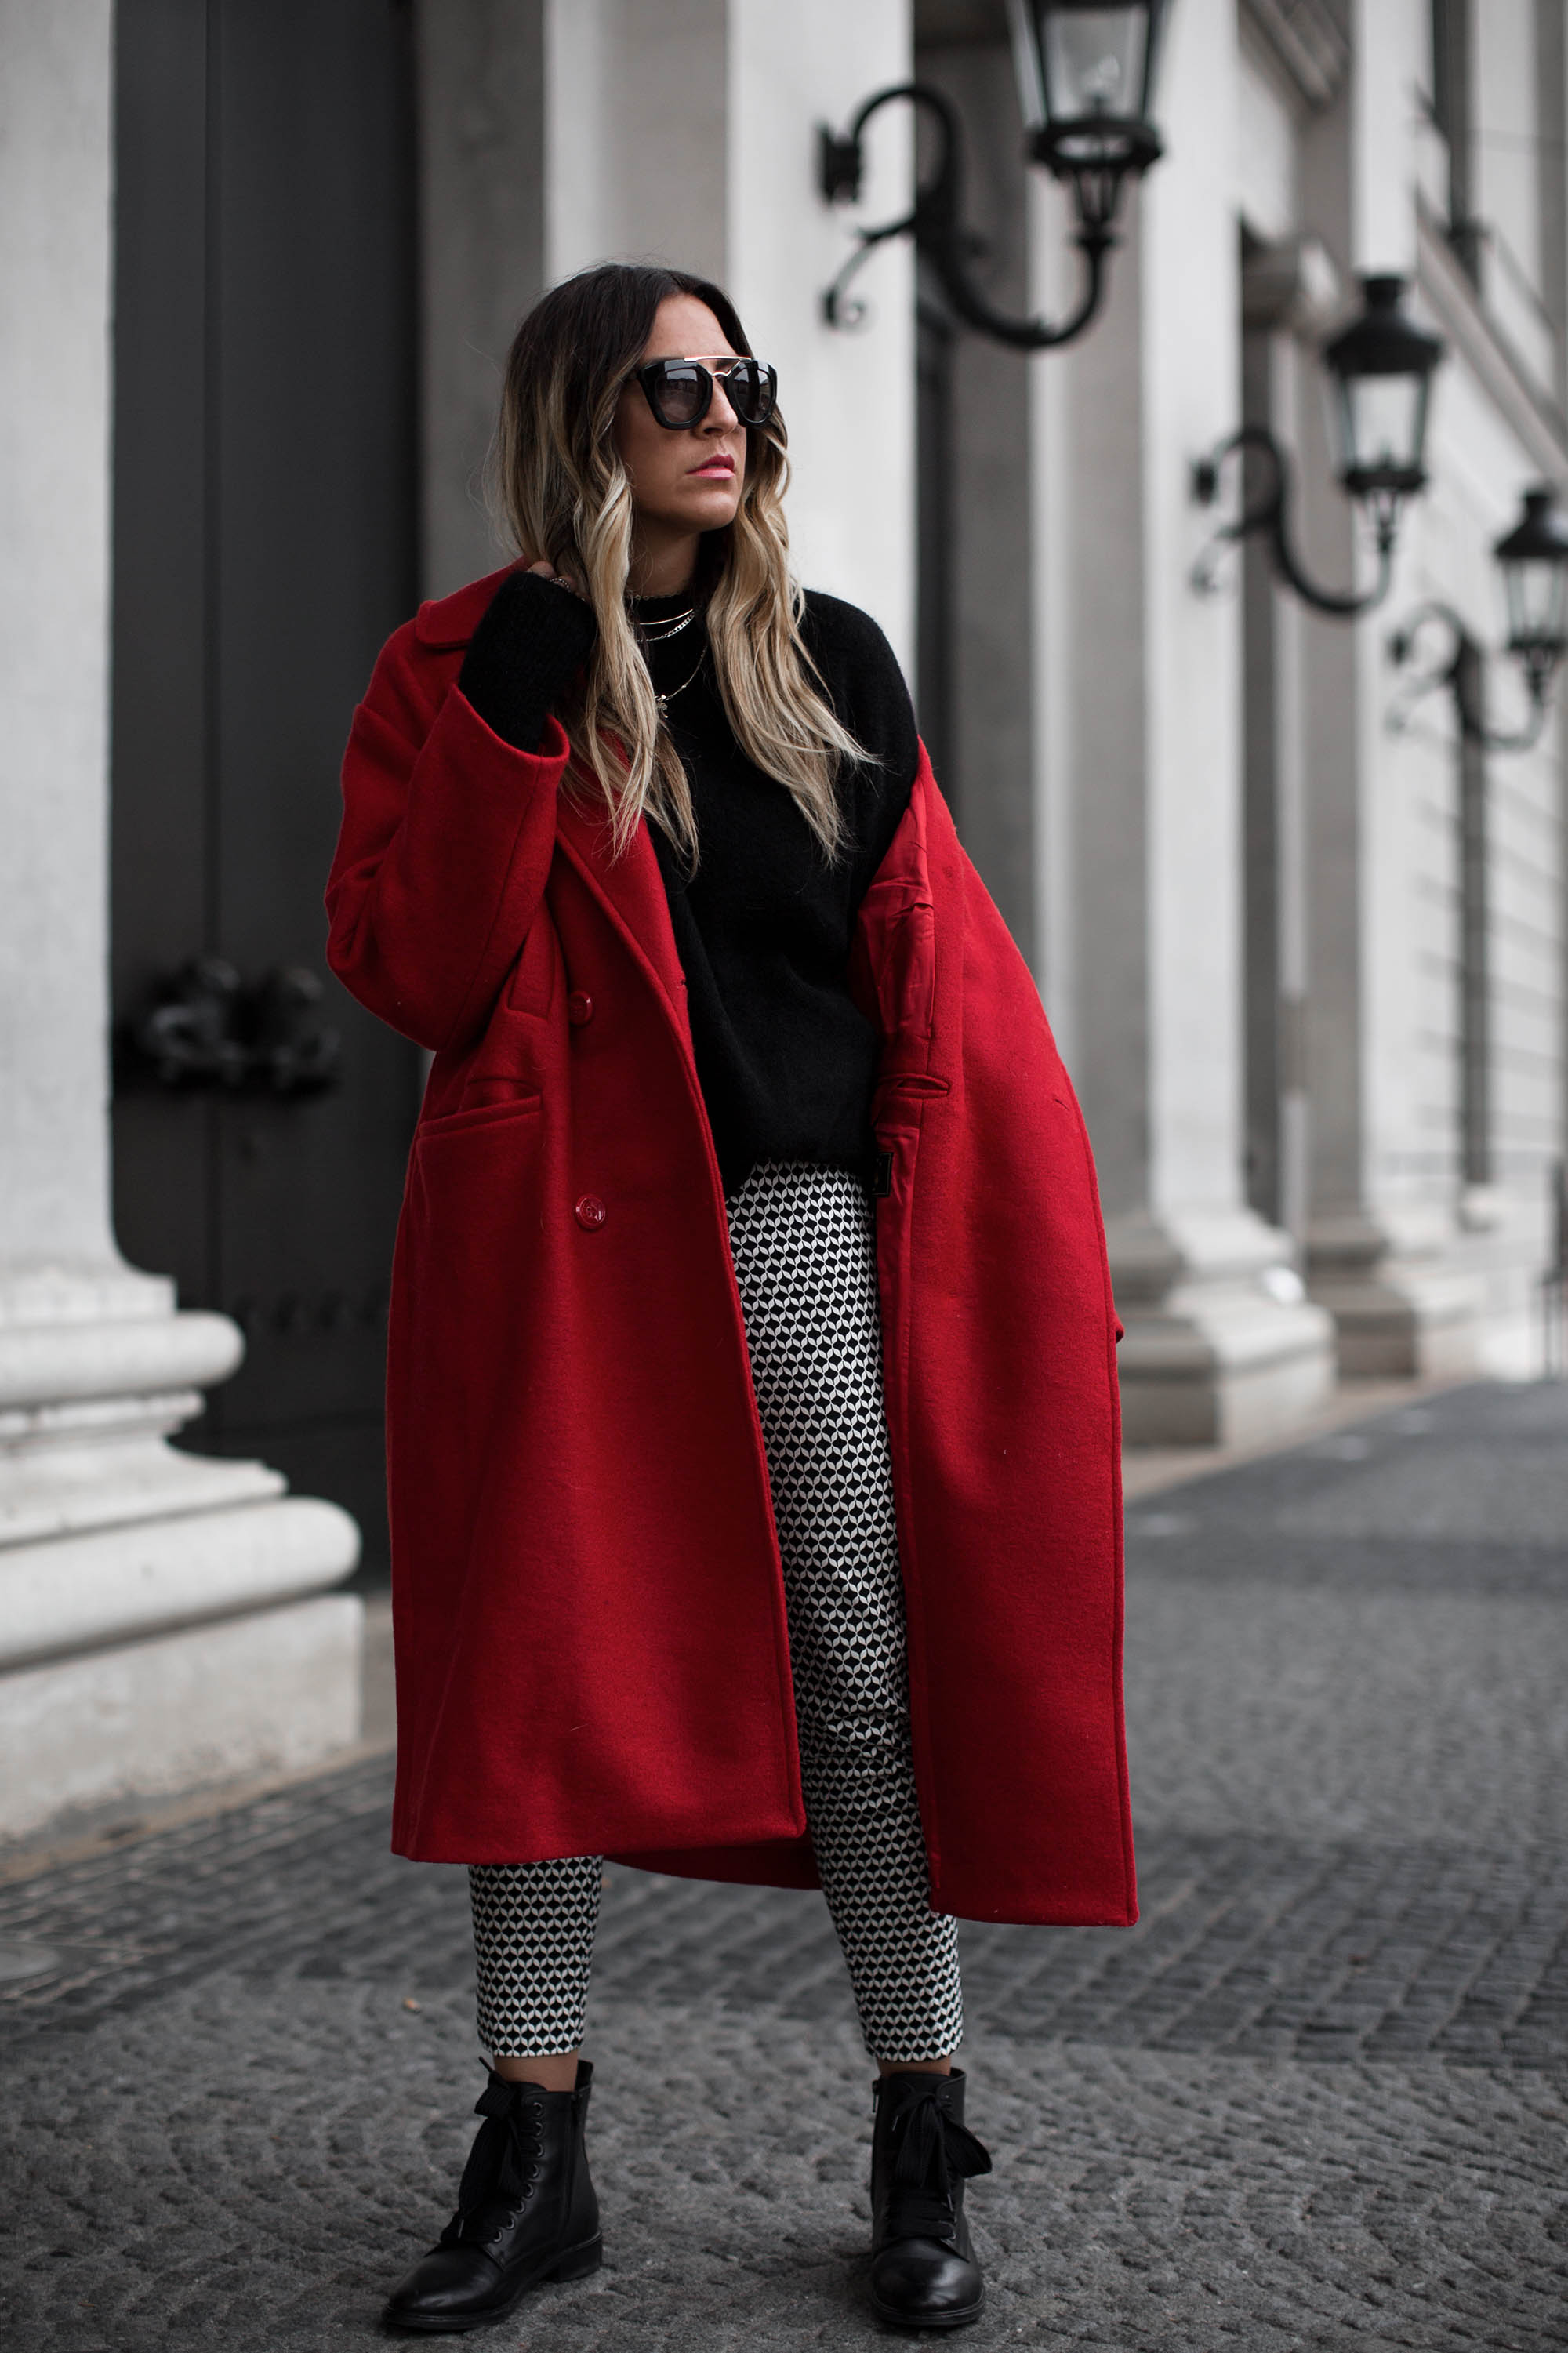 black-palms-hm-roter-mantel-boots-edited-streestyle-fashionblog-2